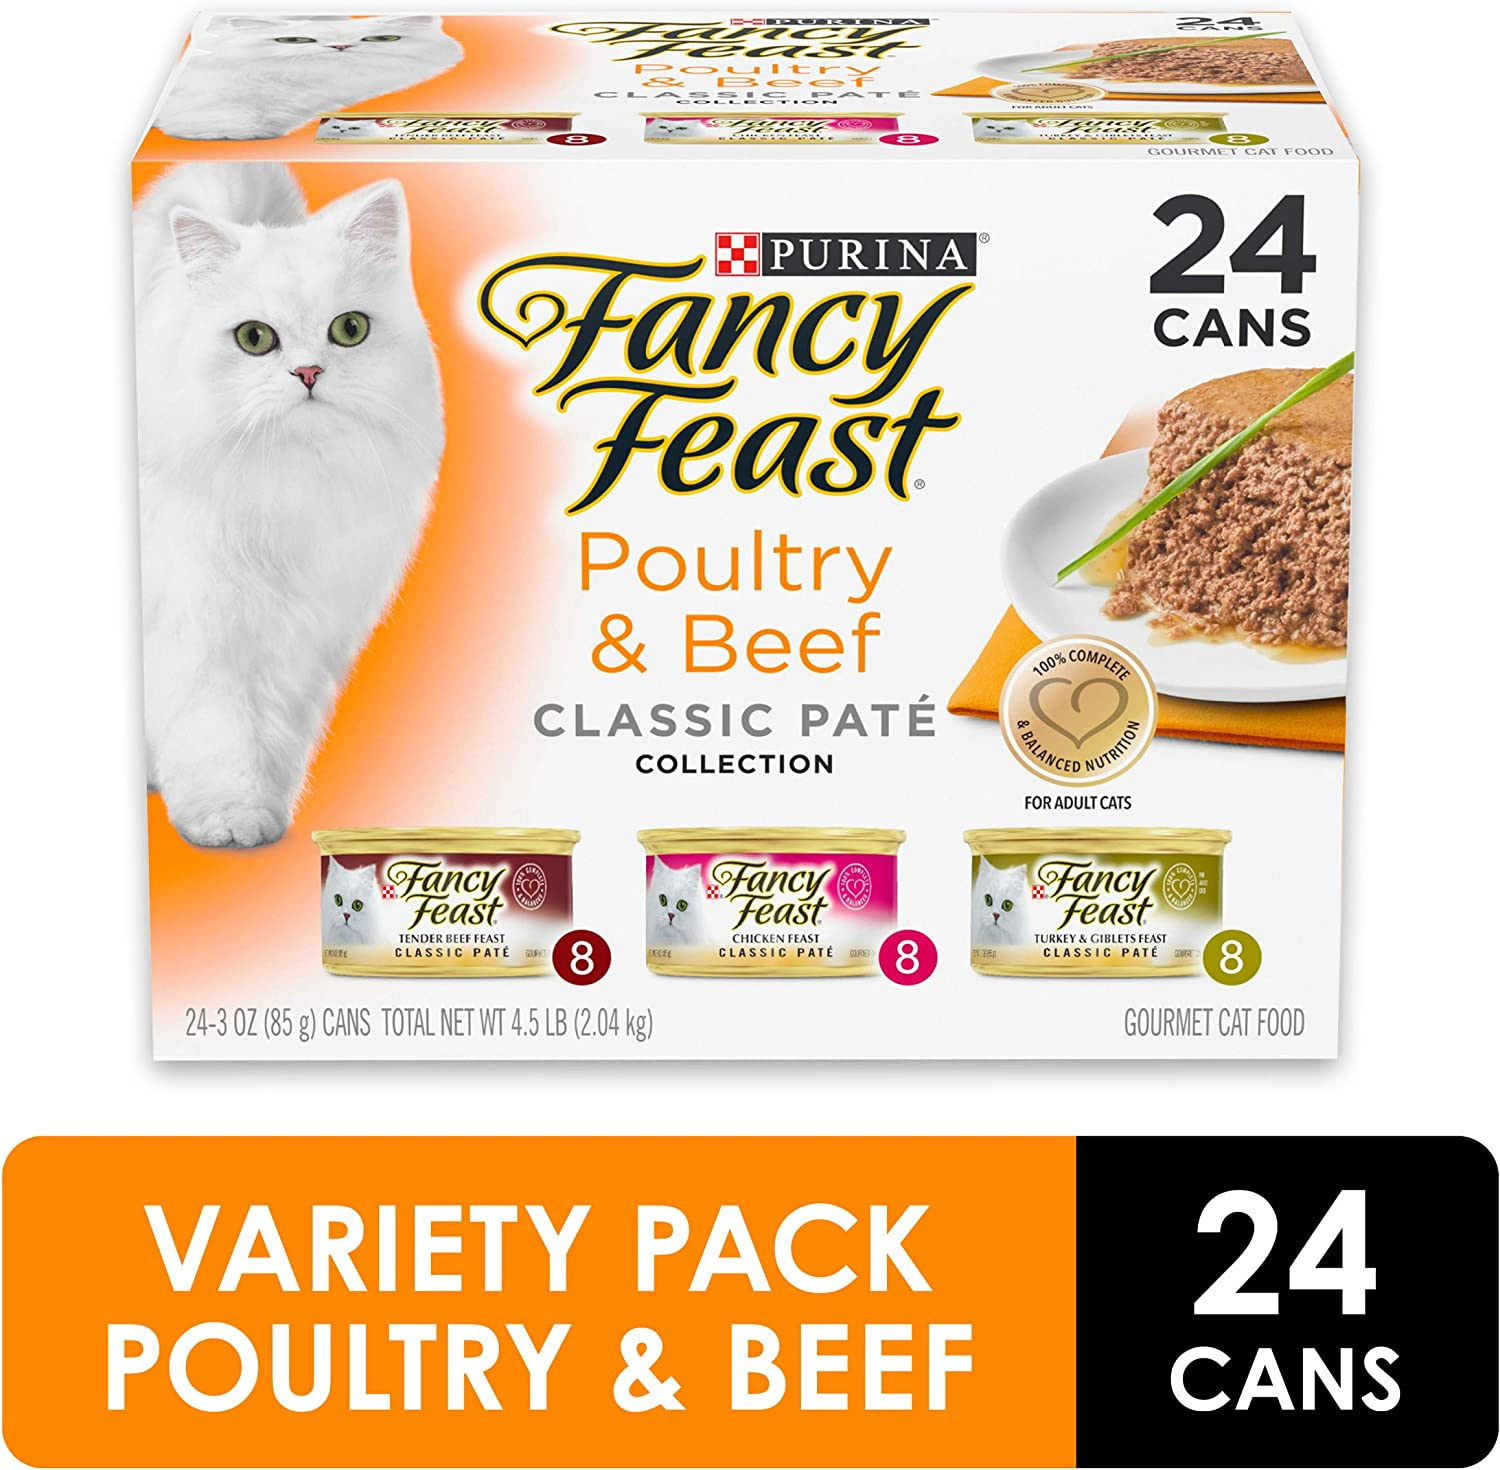 Purina Fancy Feast Wet Cat Food Variety Pack, Chicken Feast Collection - (24) 3 oz. Cans